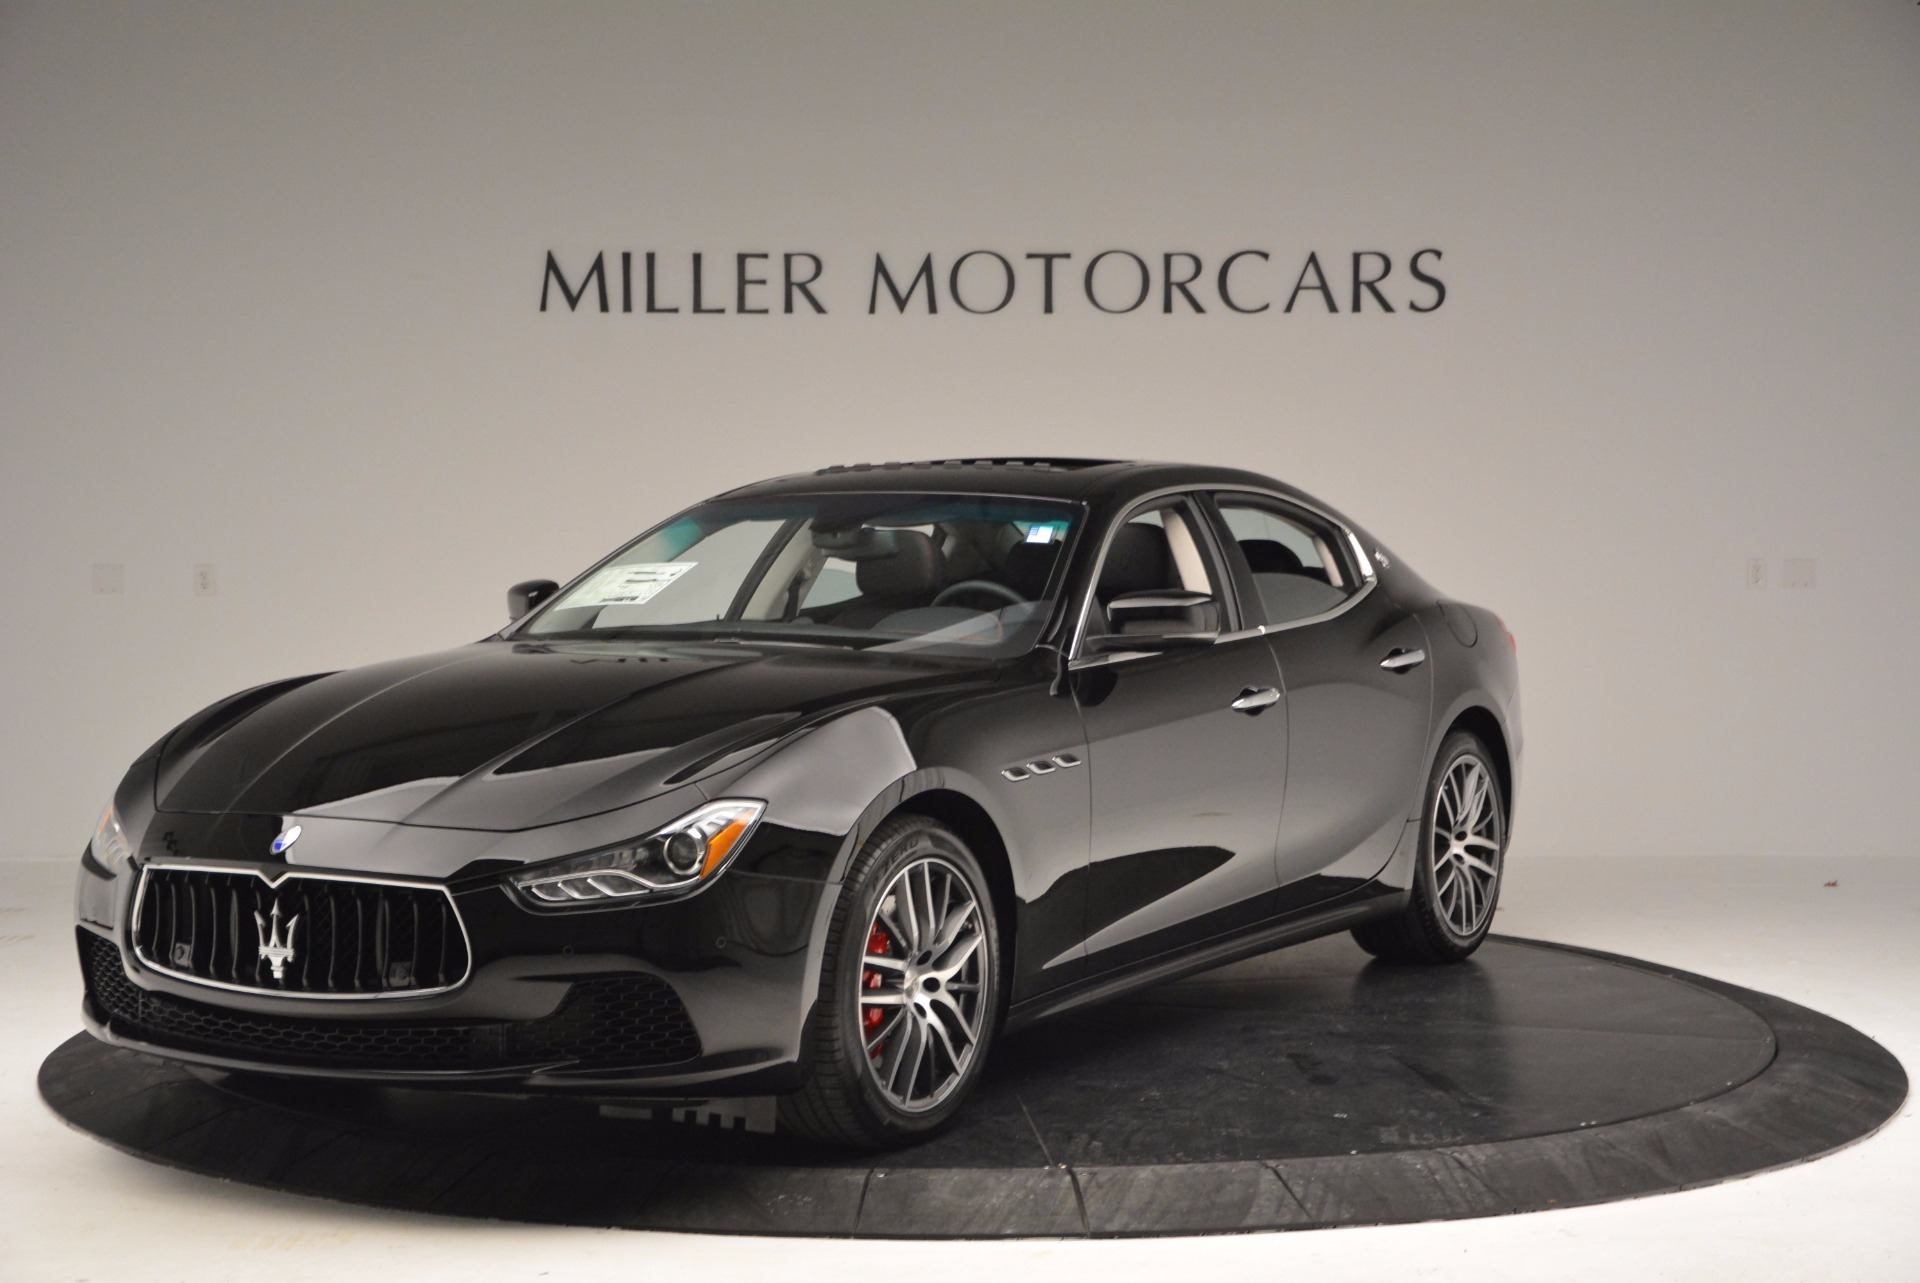 New 2017 Maserati Ghibli S Q4 For Sale In Greenwich, CT. Alfa Romeo of Greenwich, M1821 1029_main